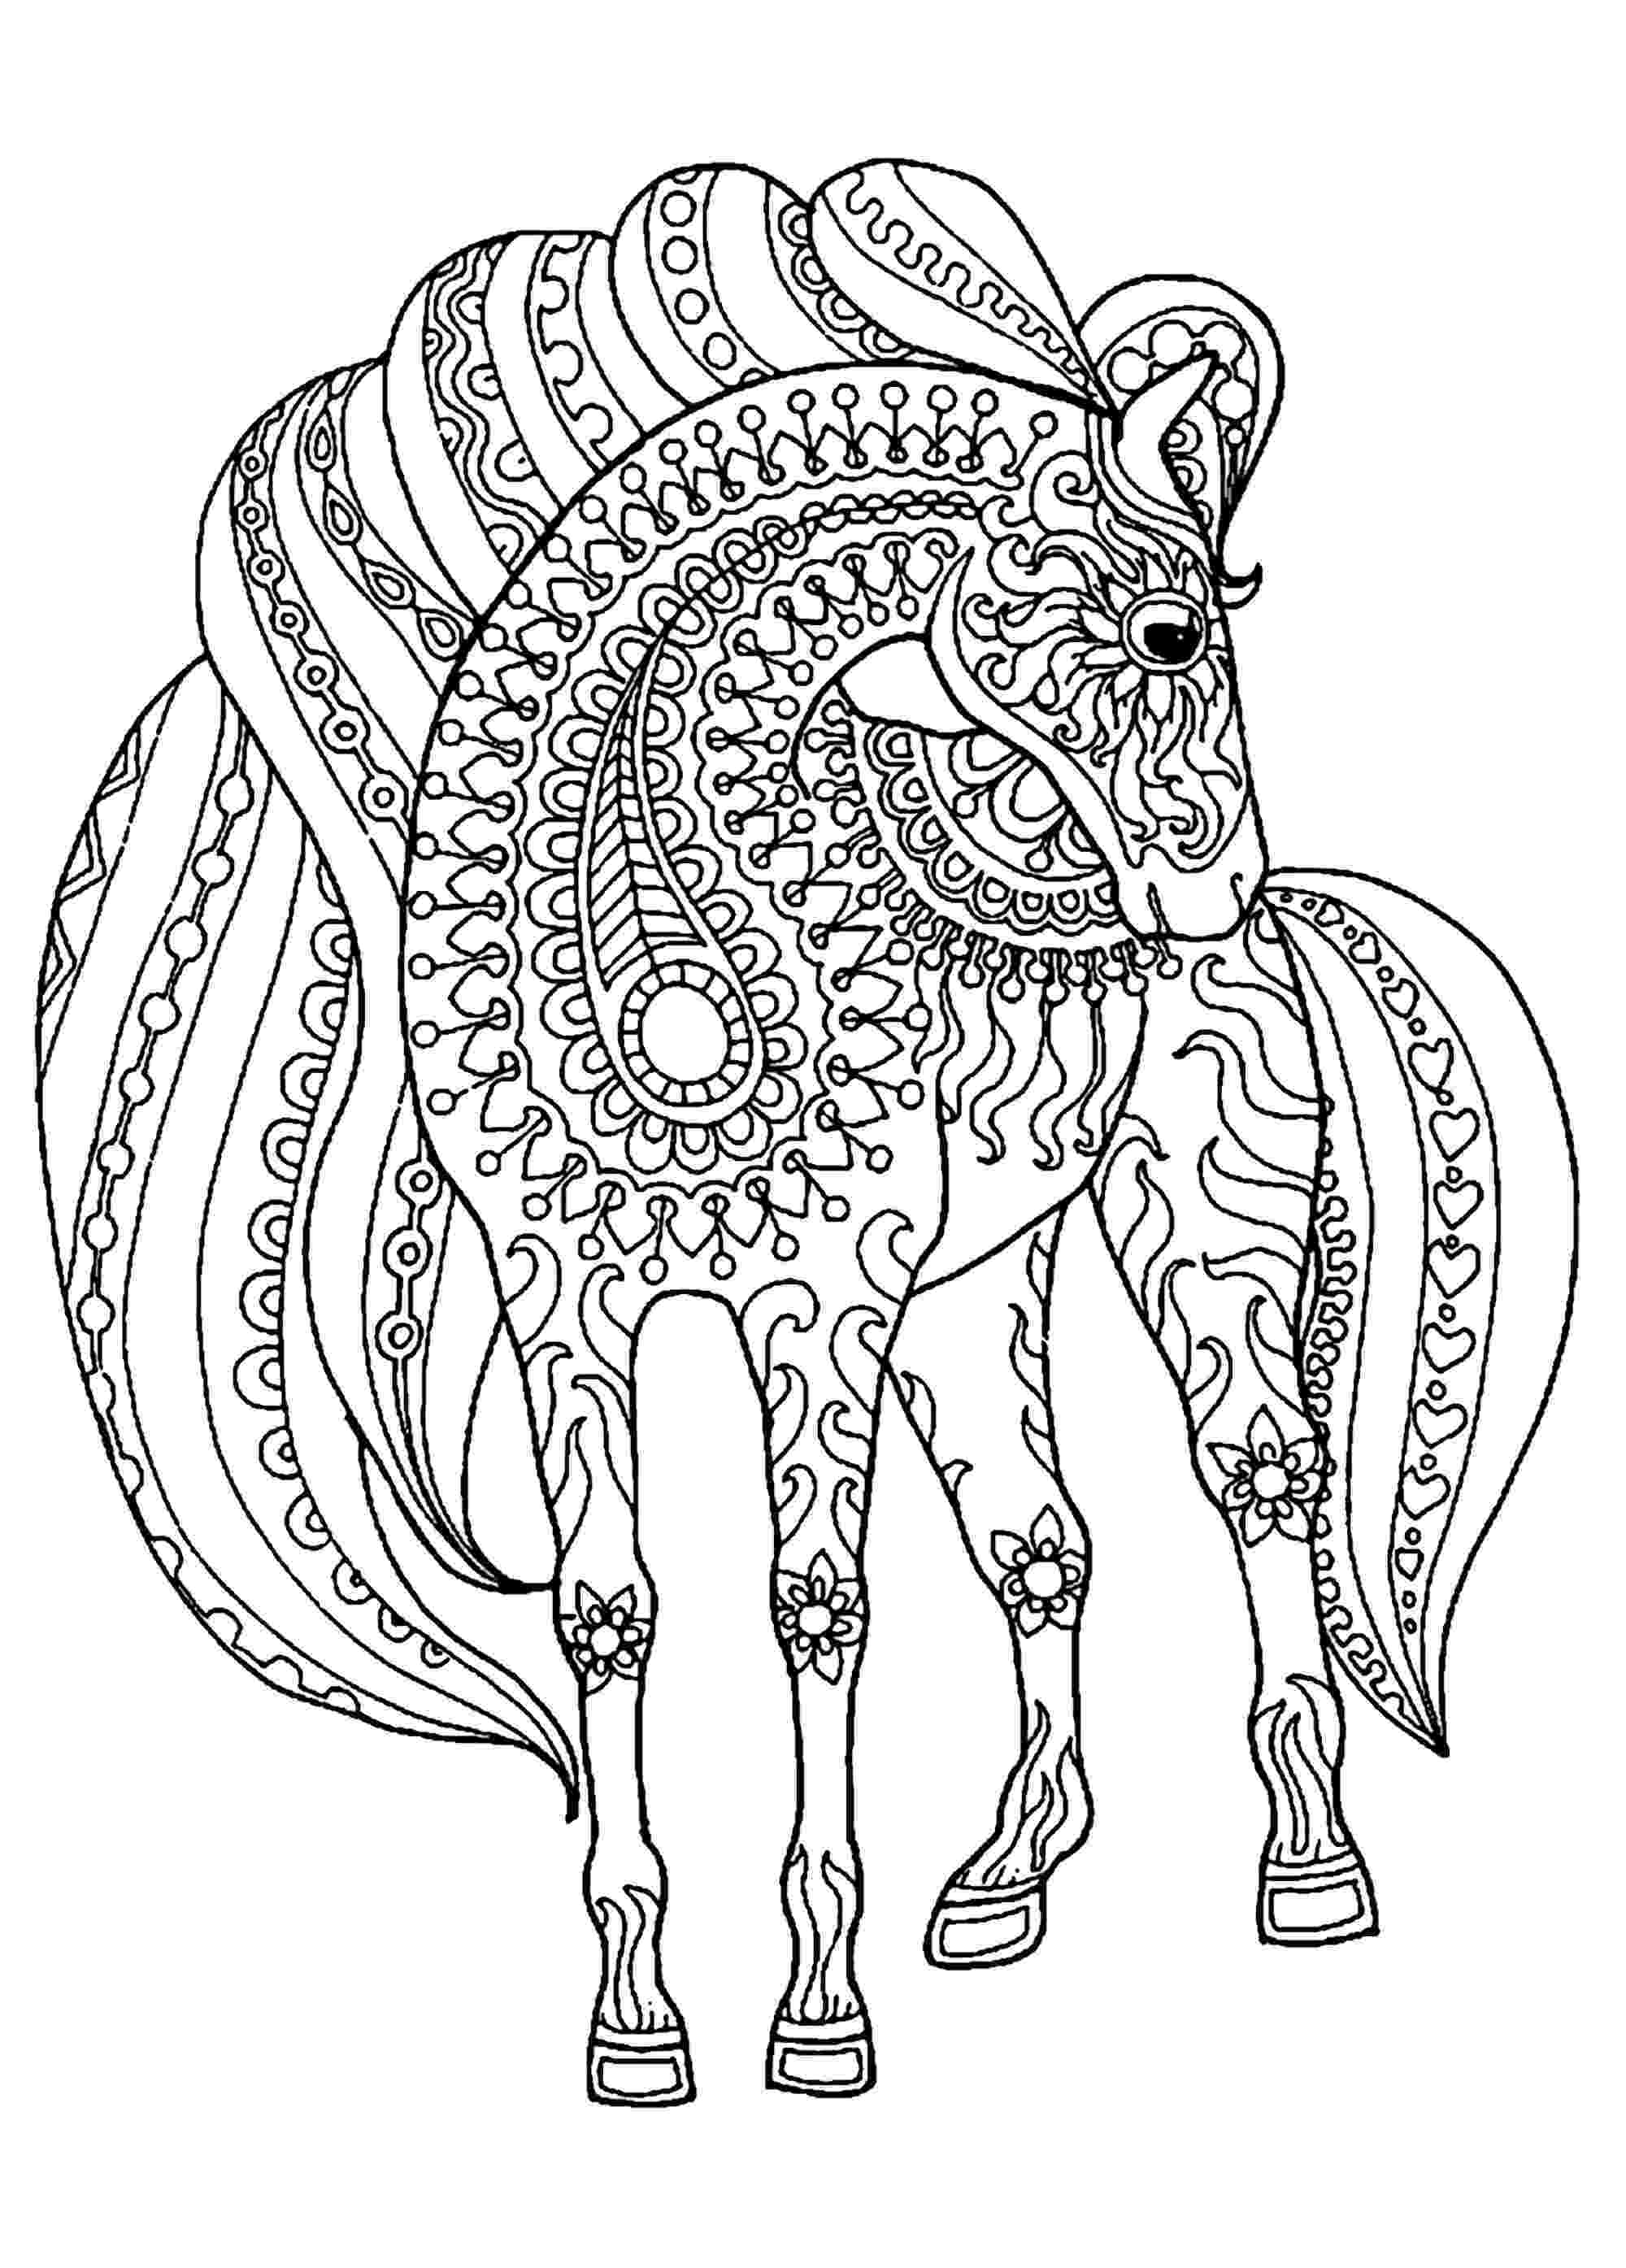 coloring pages online for adults horse coloring pages for adults best coloring pages for kids online adults pages for coloring